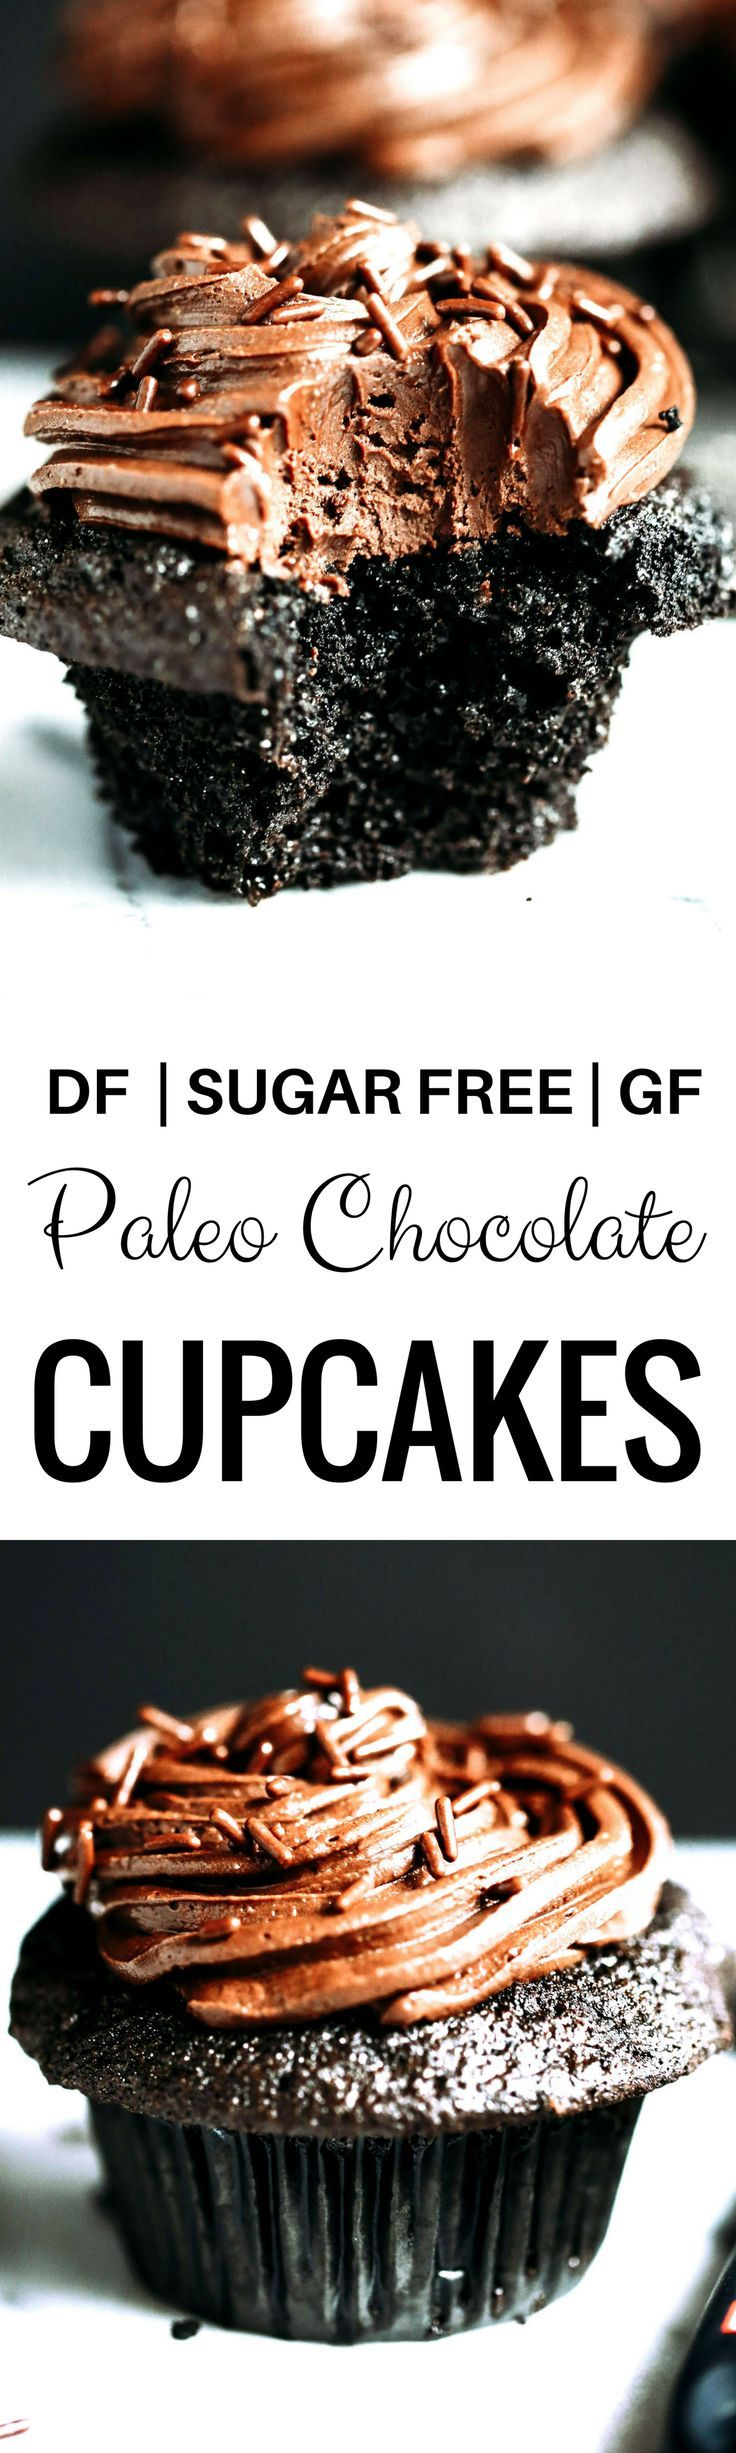 Please use dark chocolate chips!!   Paleo chocolate cupcakes-moist, but not eggy! These paleo cupcakes have a rich, dark chocolate taste and are covered in a whipped dairy free refined sugar free chocolate frosting! Coconut flour cupcakes. Best easy Paleo cupcakes. Paleo cupcakes recipes. Gluten free chocolate cupcakes. Gluten free coconut flour cupcakes. Dairy free healthy cupcakes.